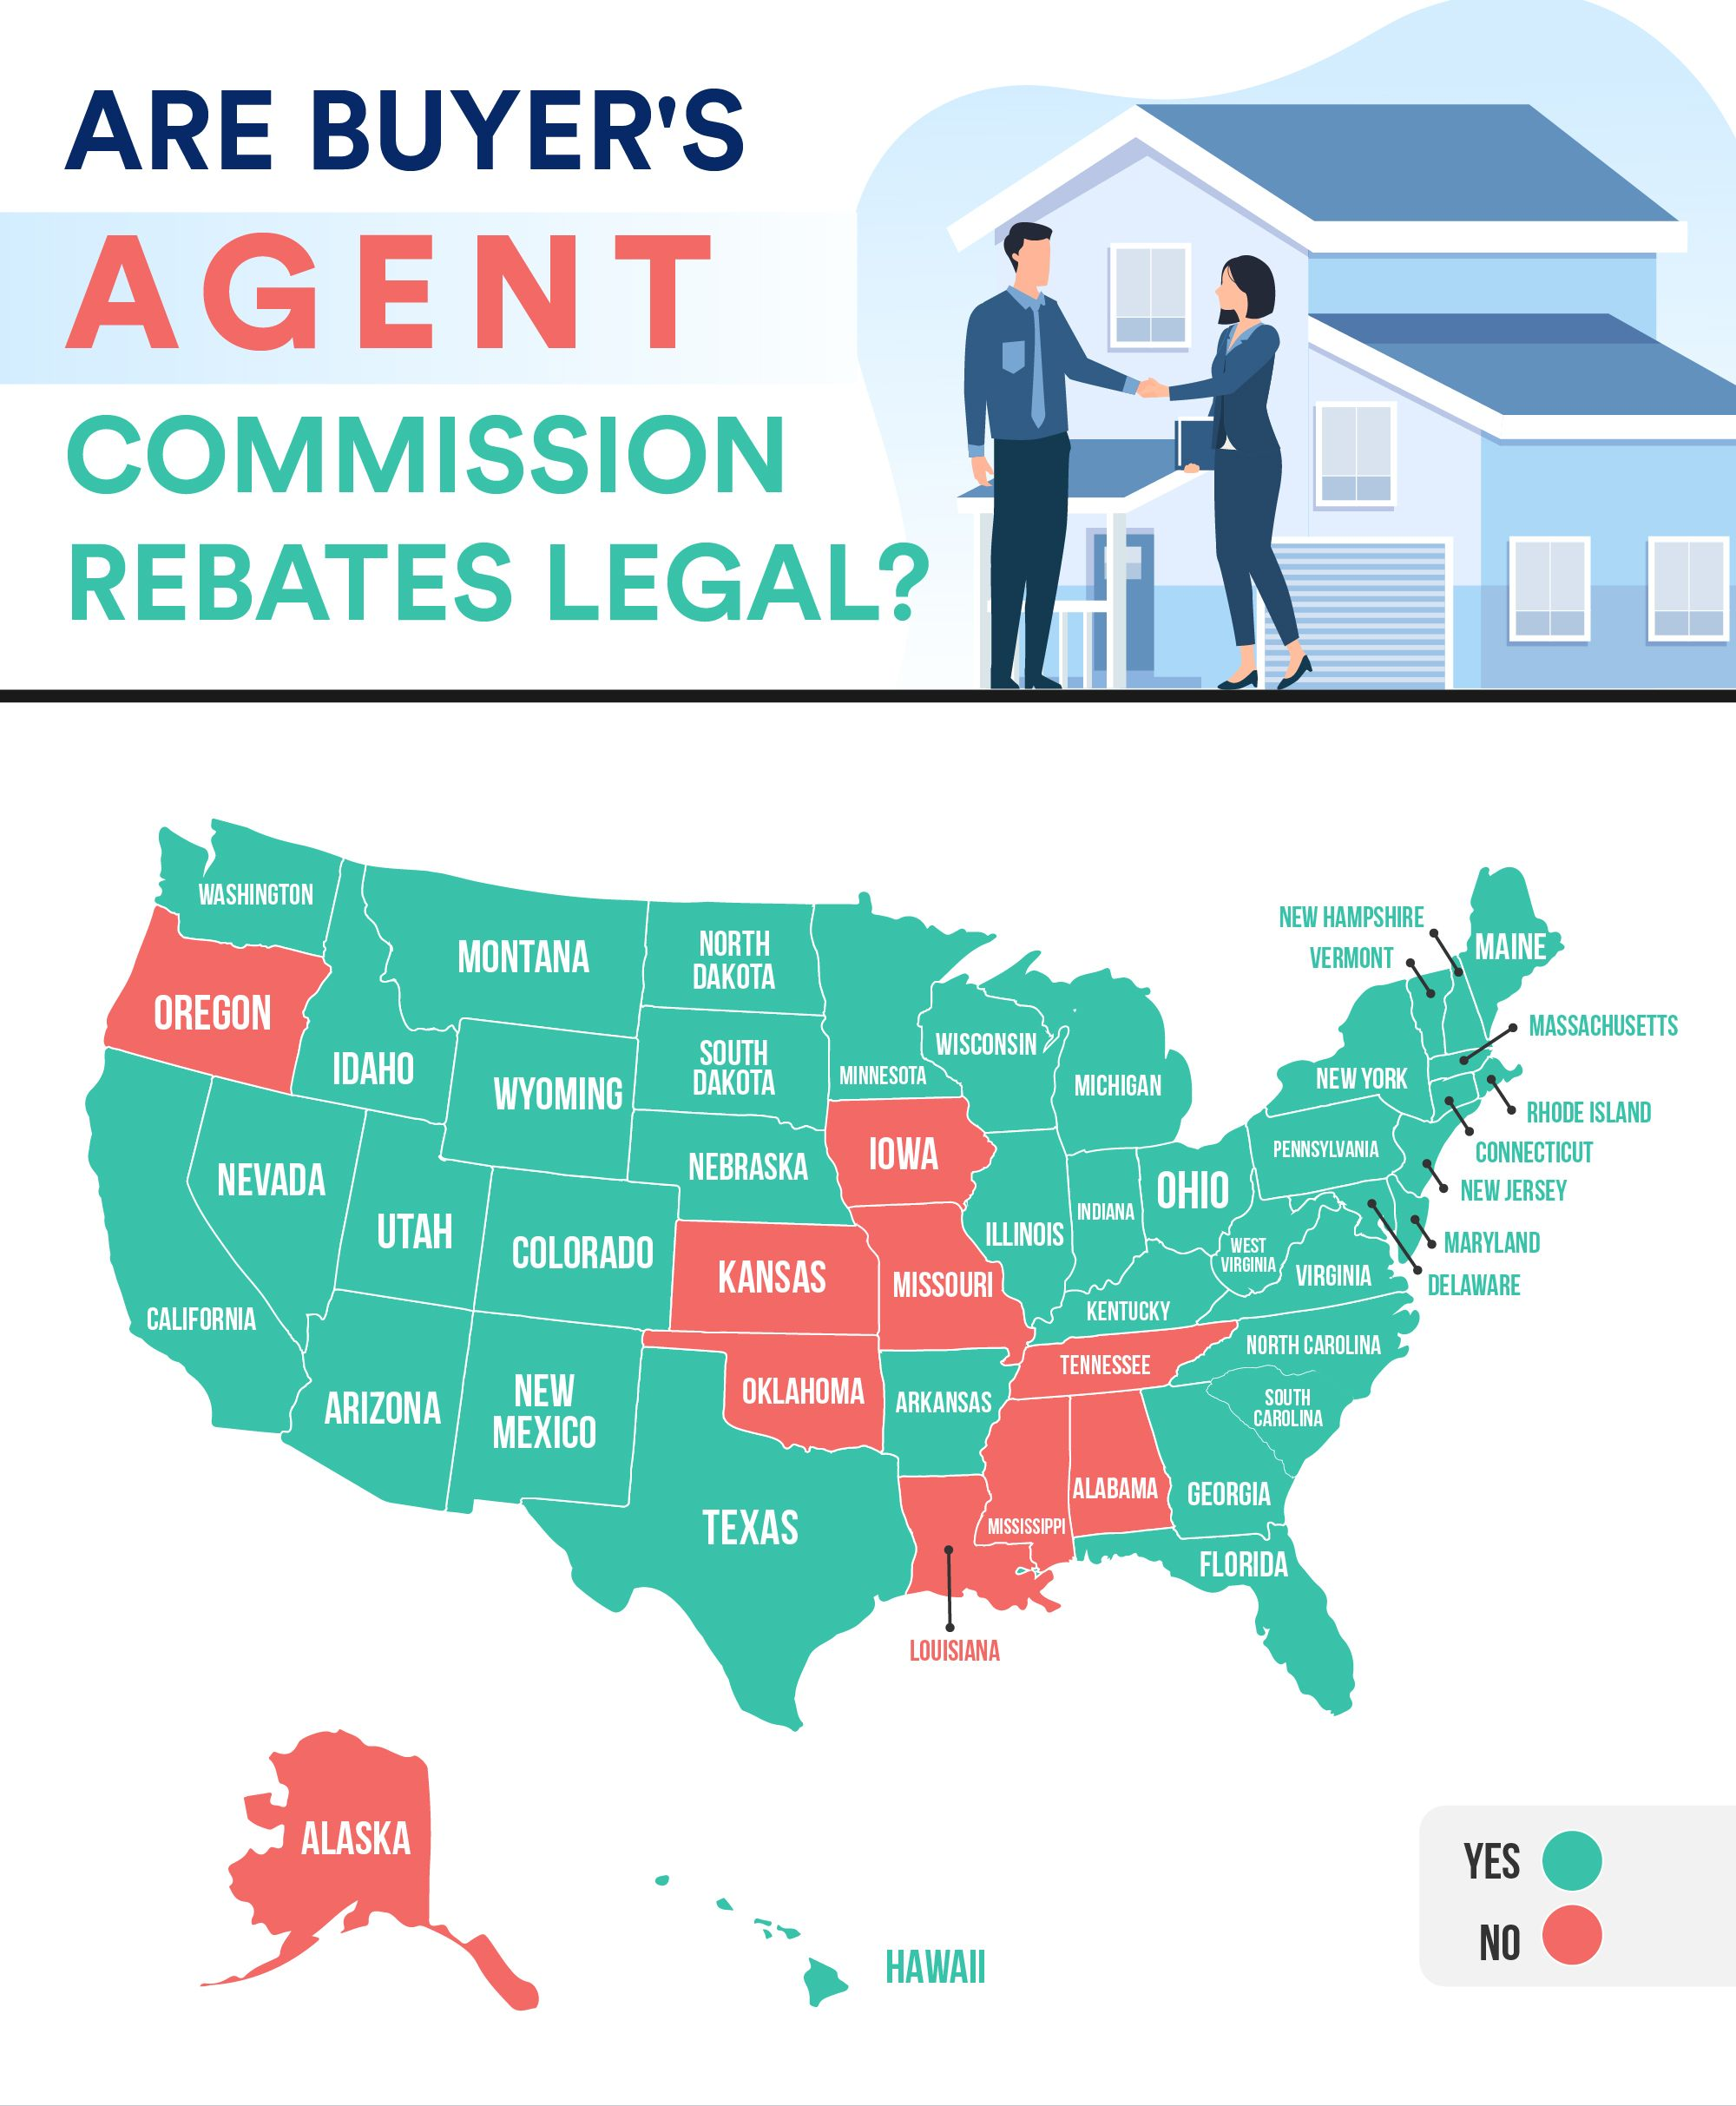 Infographic depicting a map of the United States showing the states where a buyer's agent commission rebate is legal